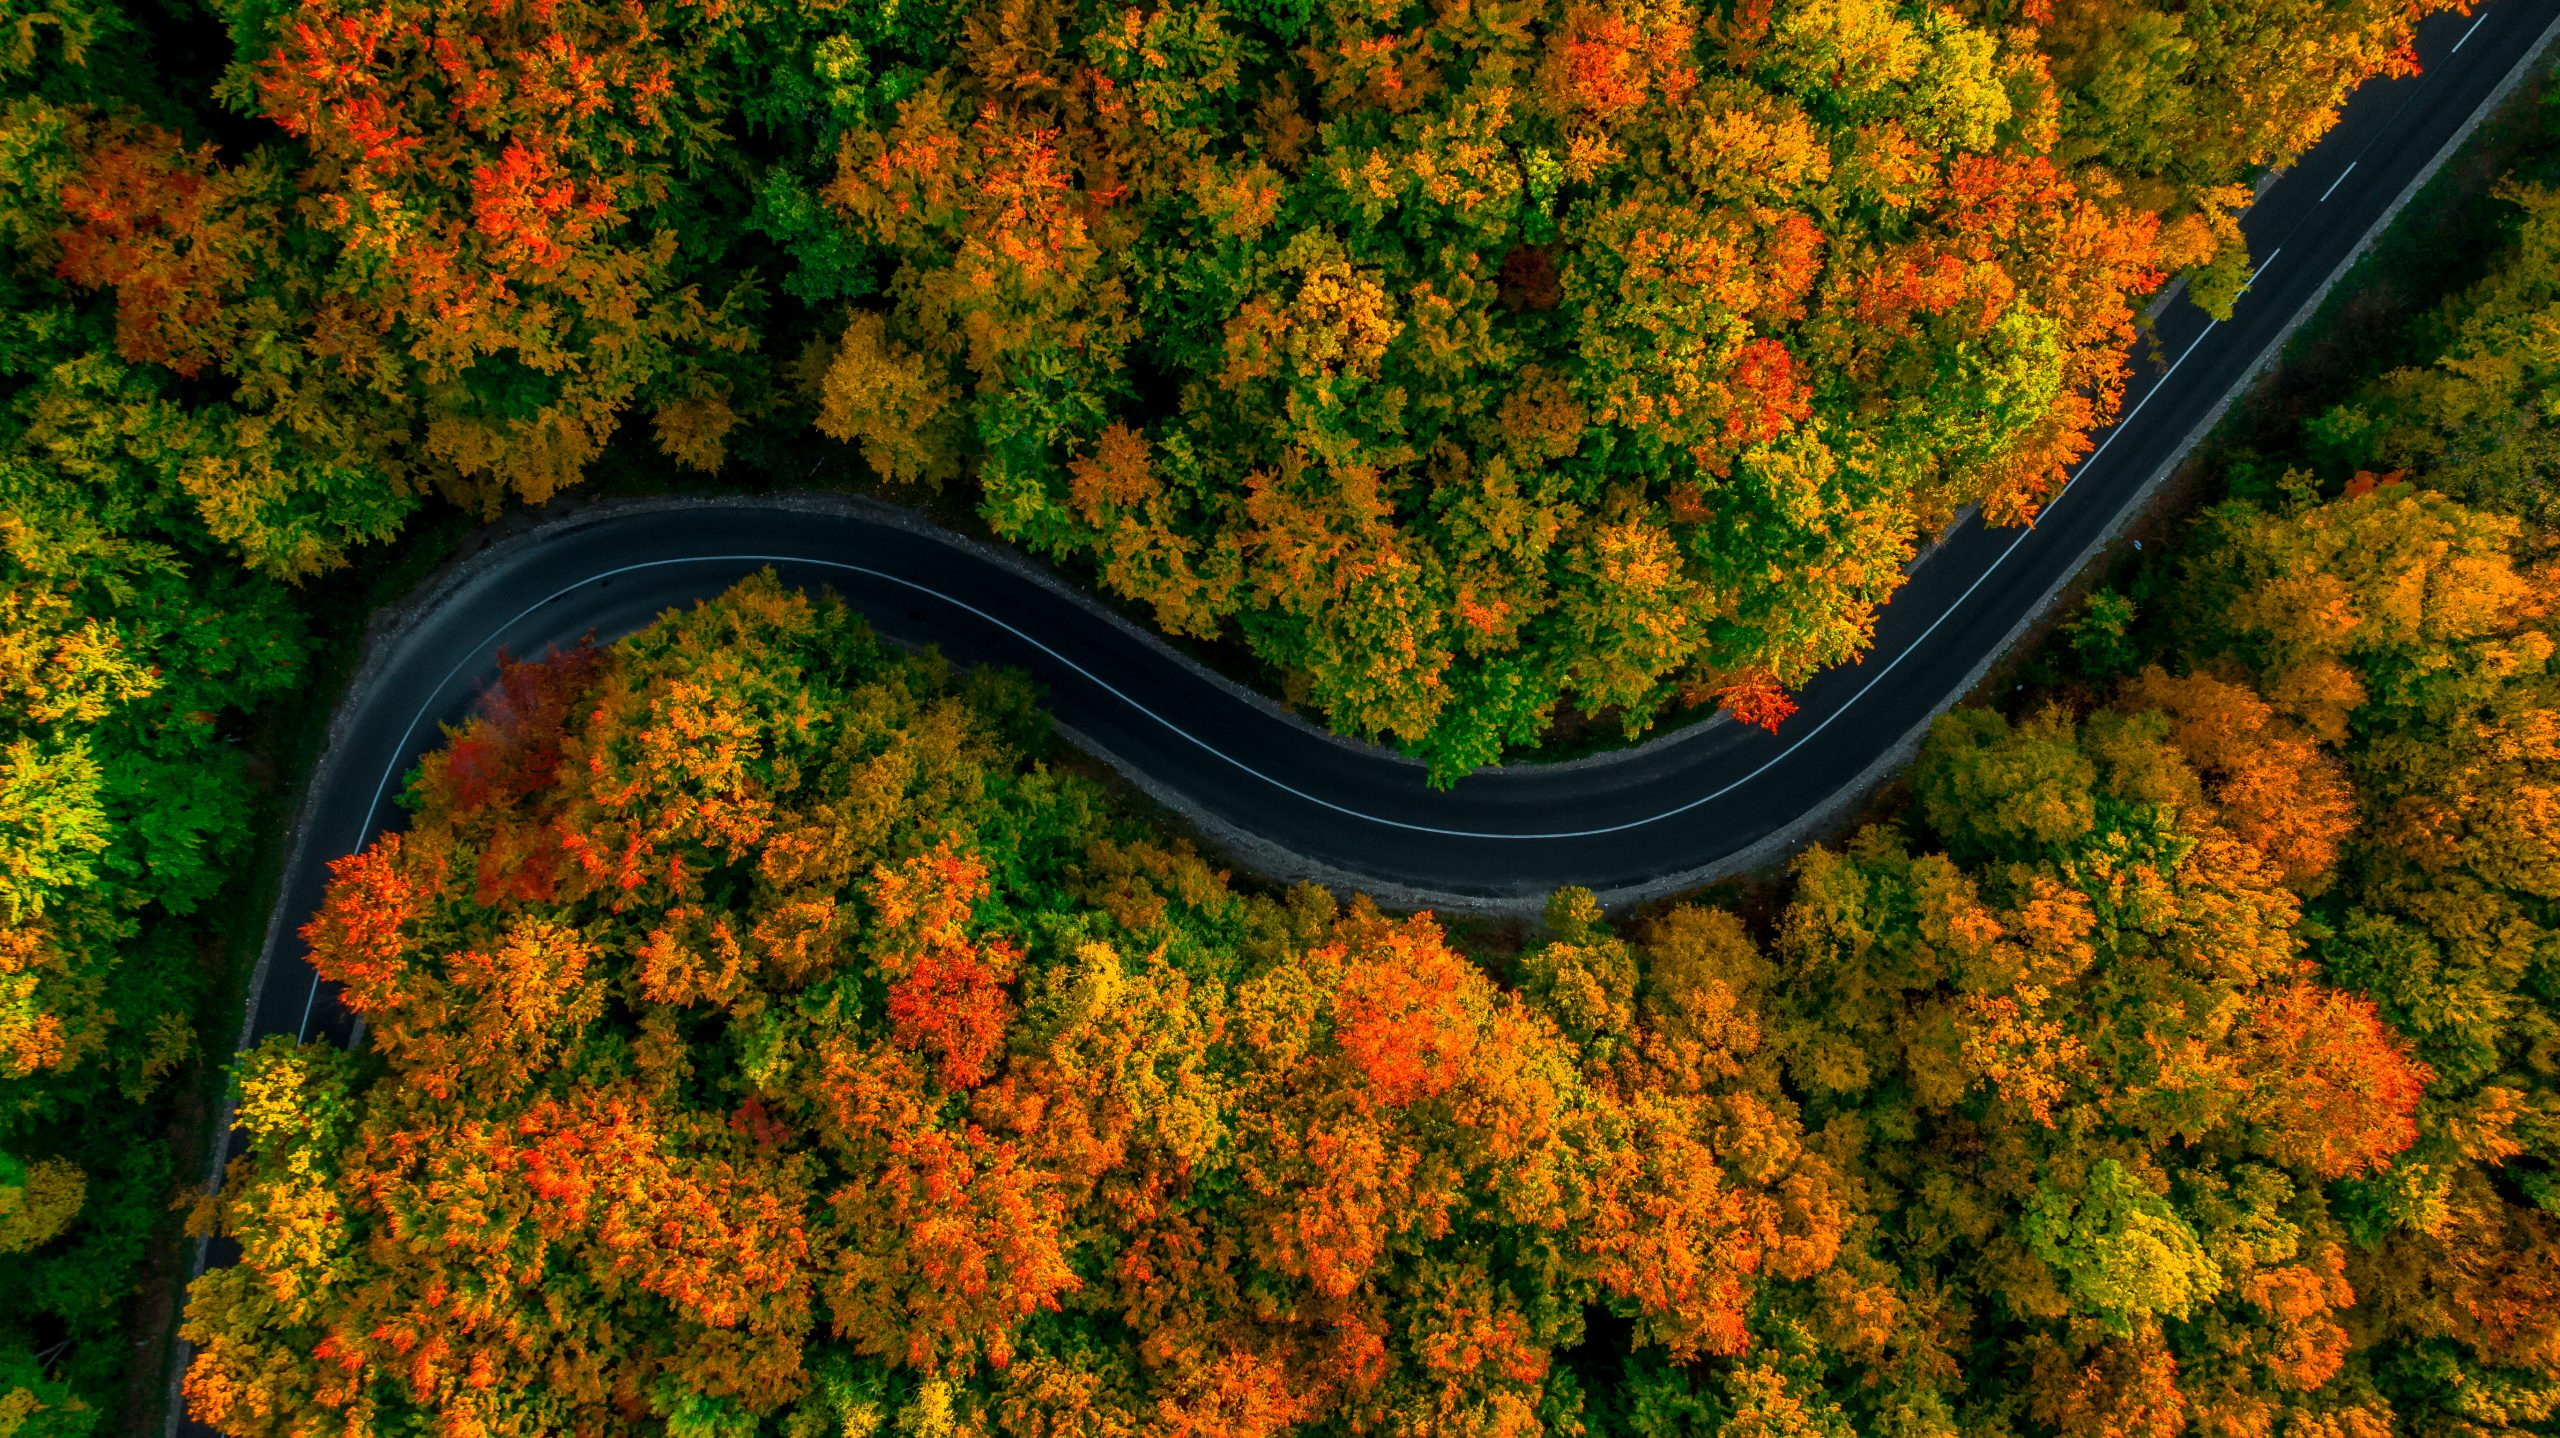 An aerial view of a winding road through a forest of autumn colours of green reds and orange